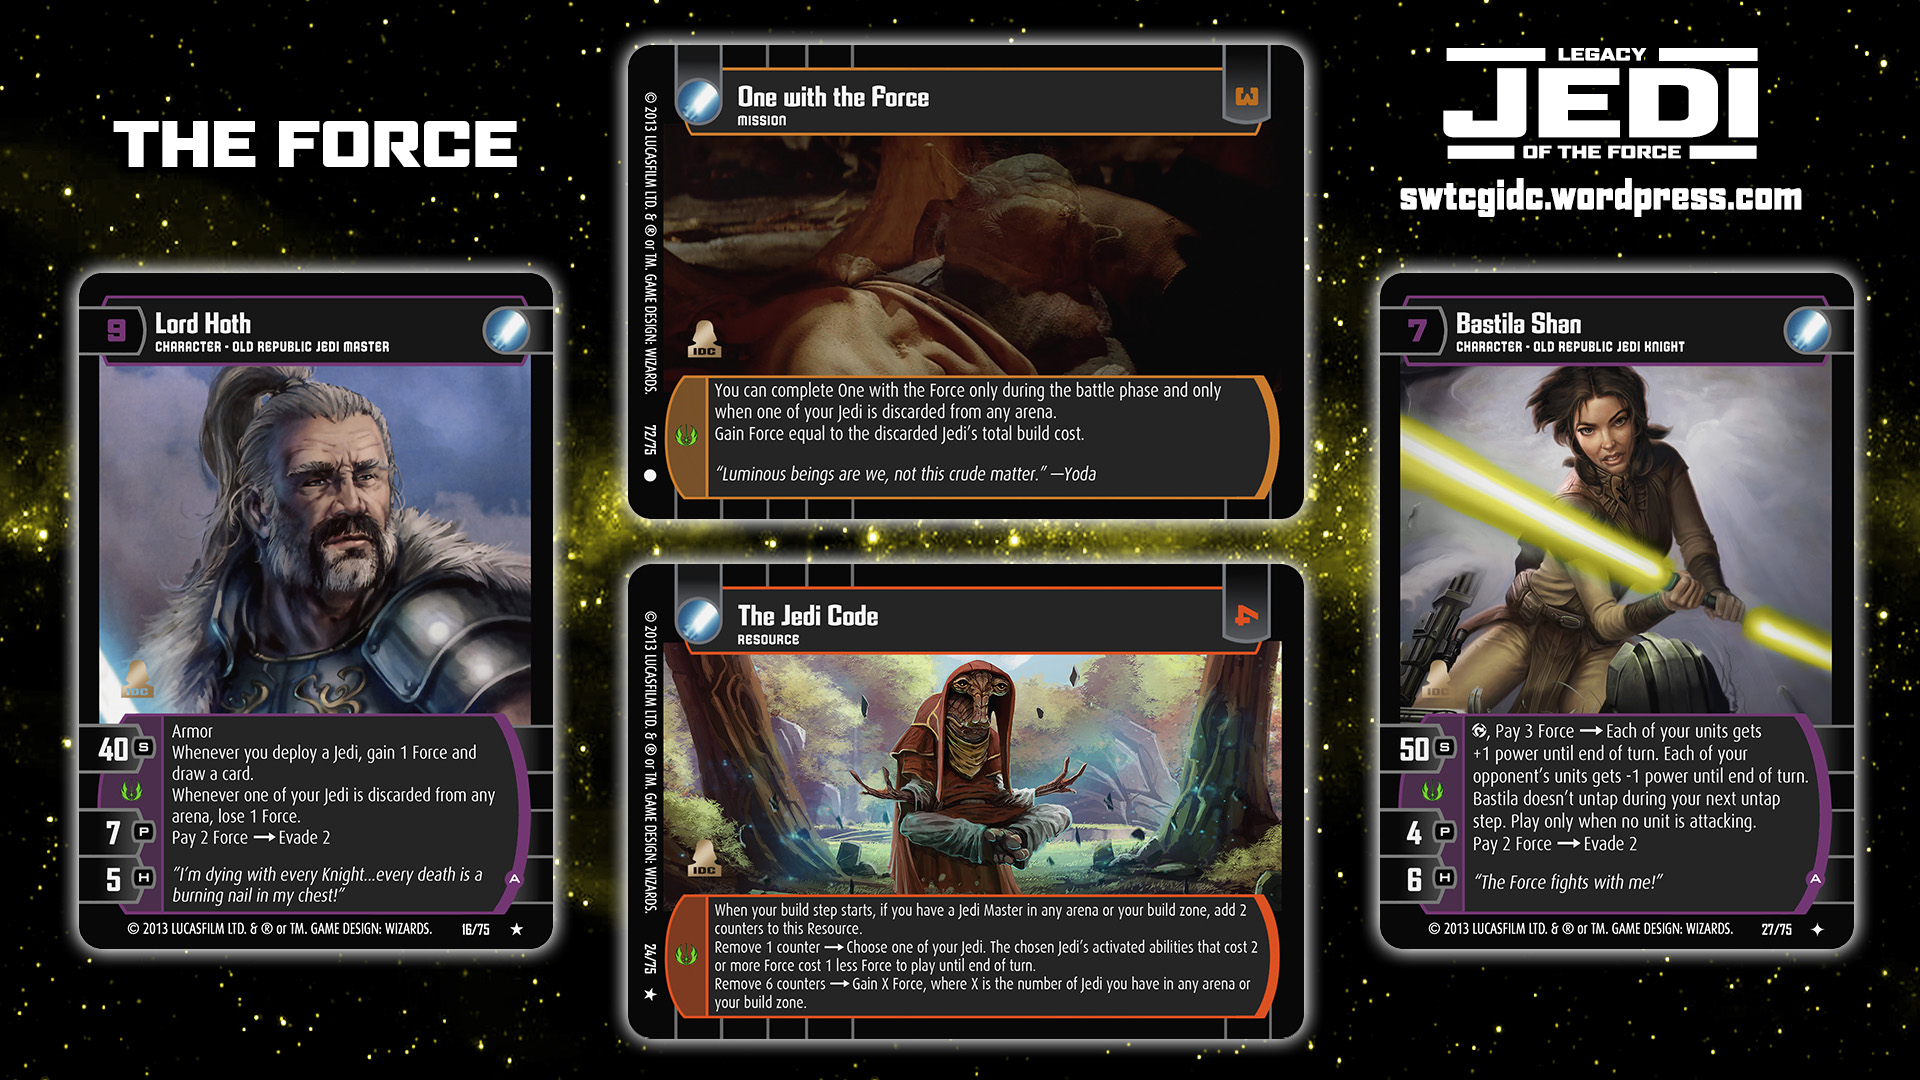 Star Wars Trading Card Game Jedi Wallpaper 2 The Force Star Wars Trading Card Game Independent Development Committee